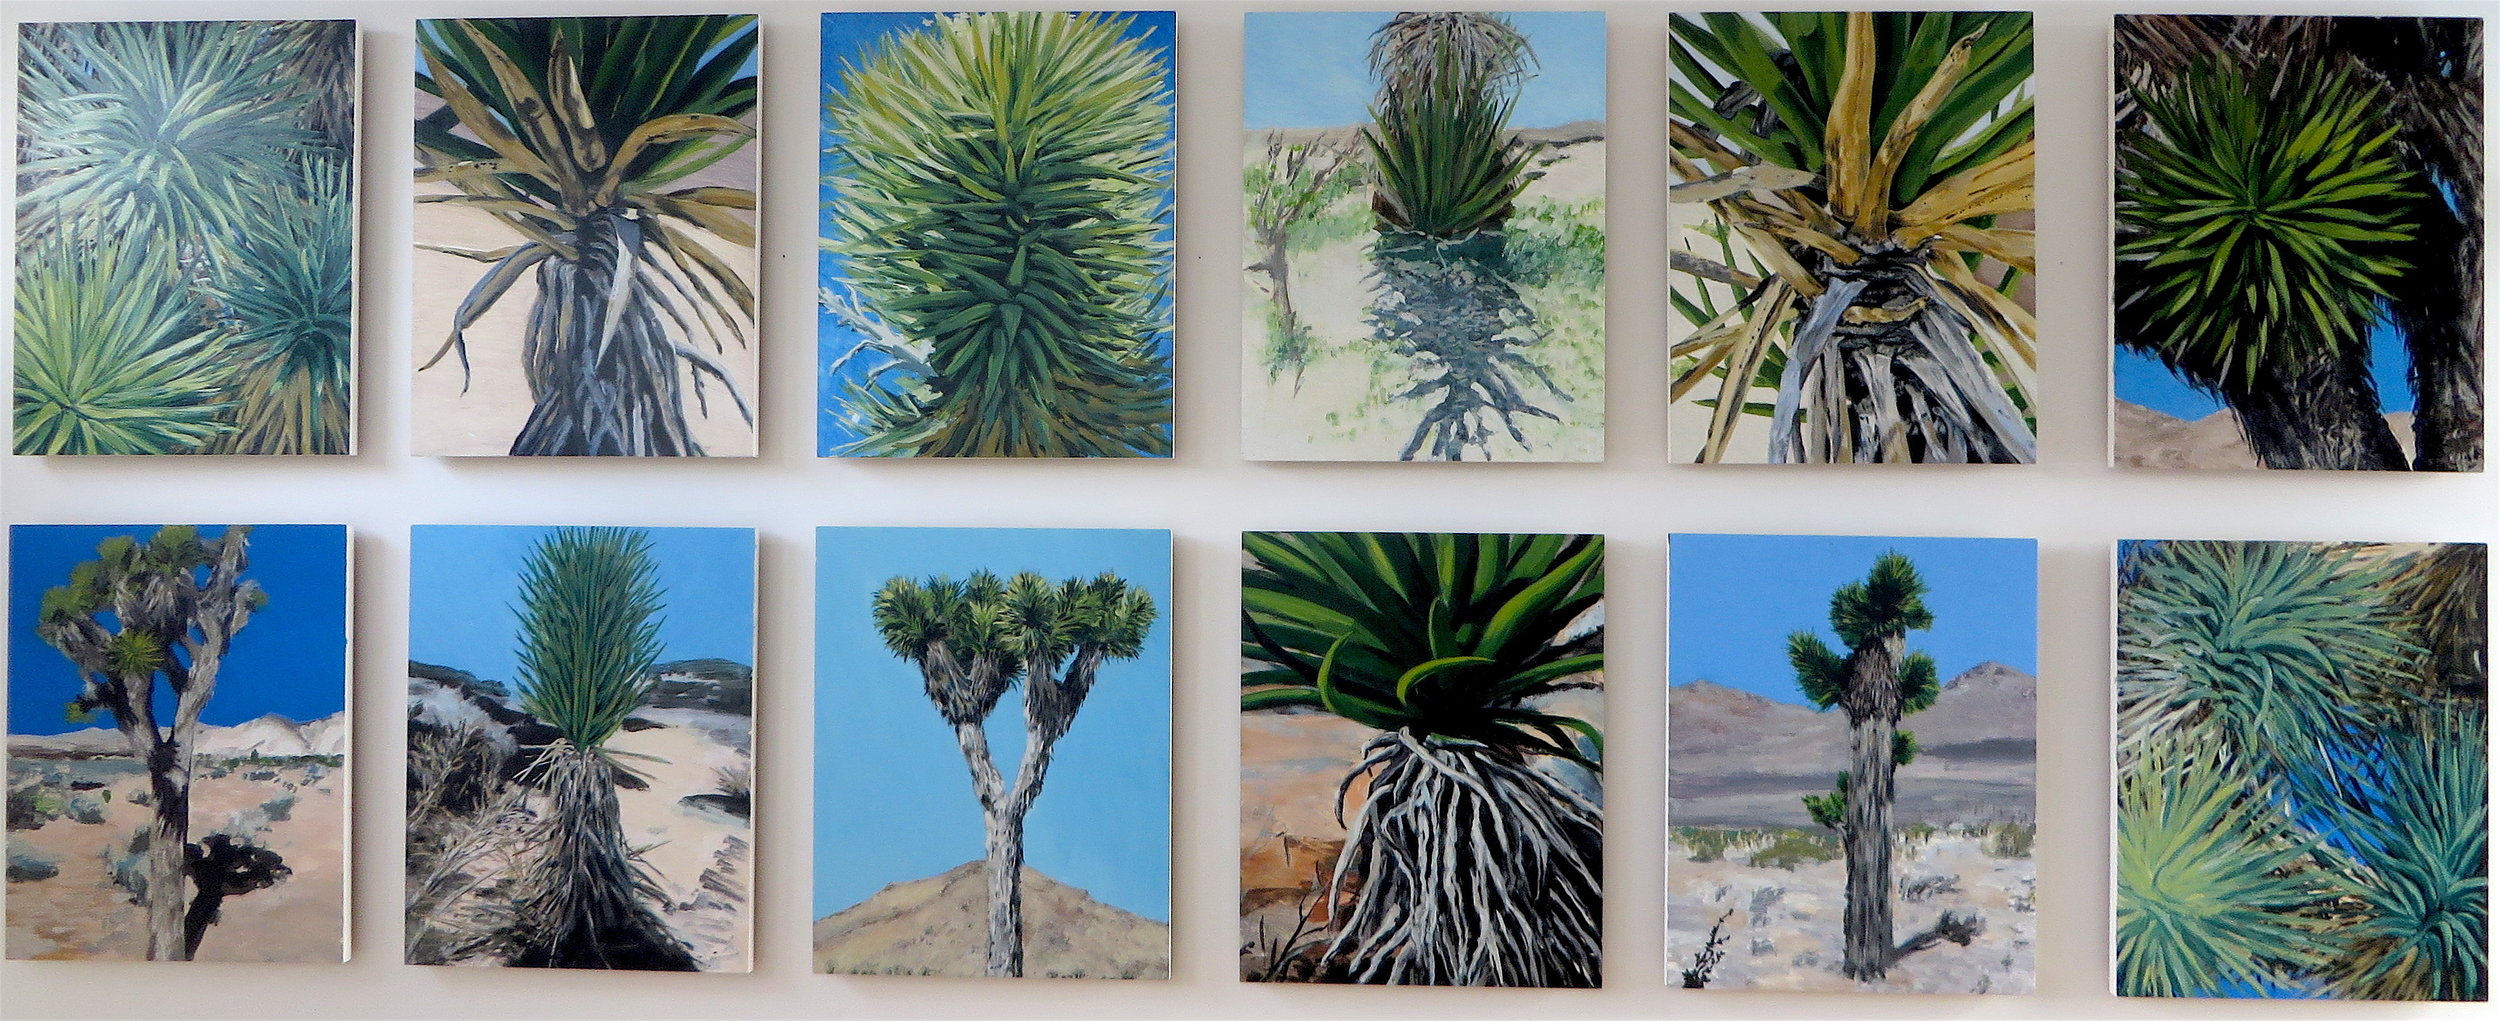 Joshua Tree, Group of 12, 2008